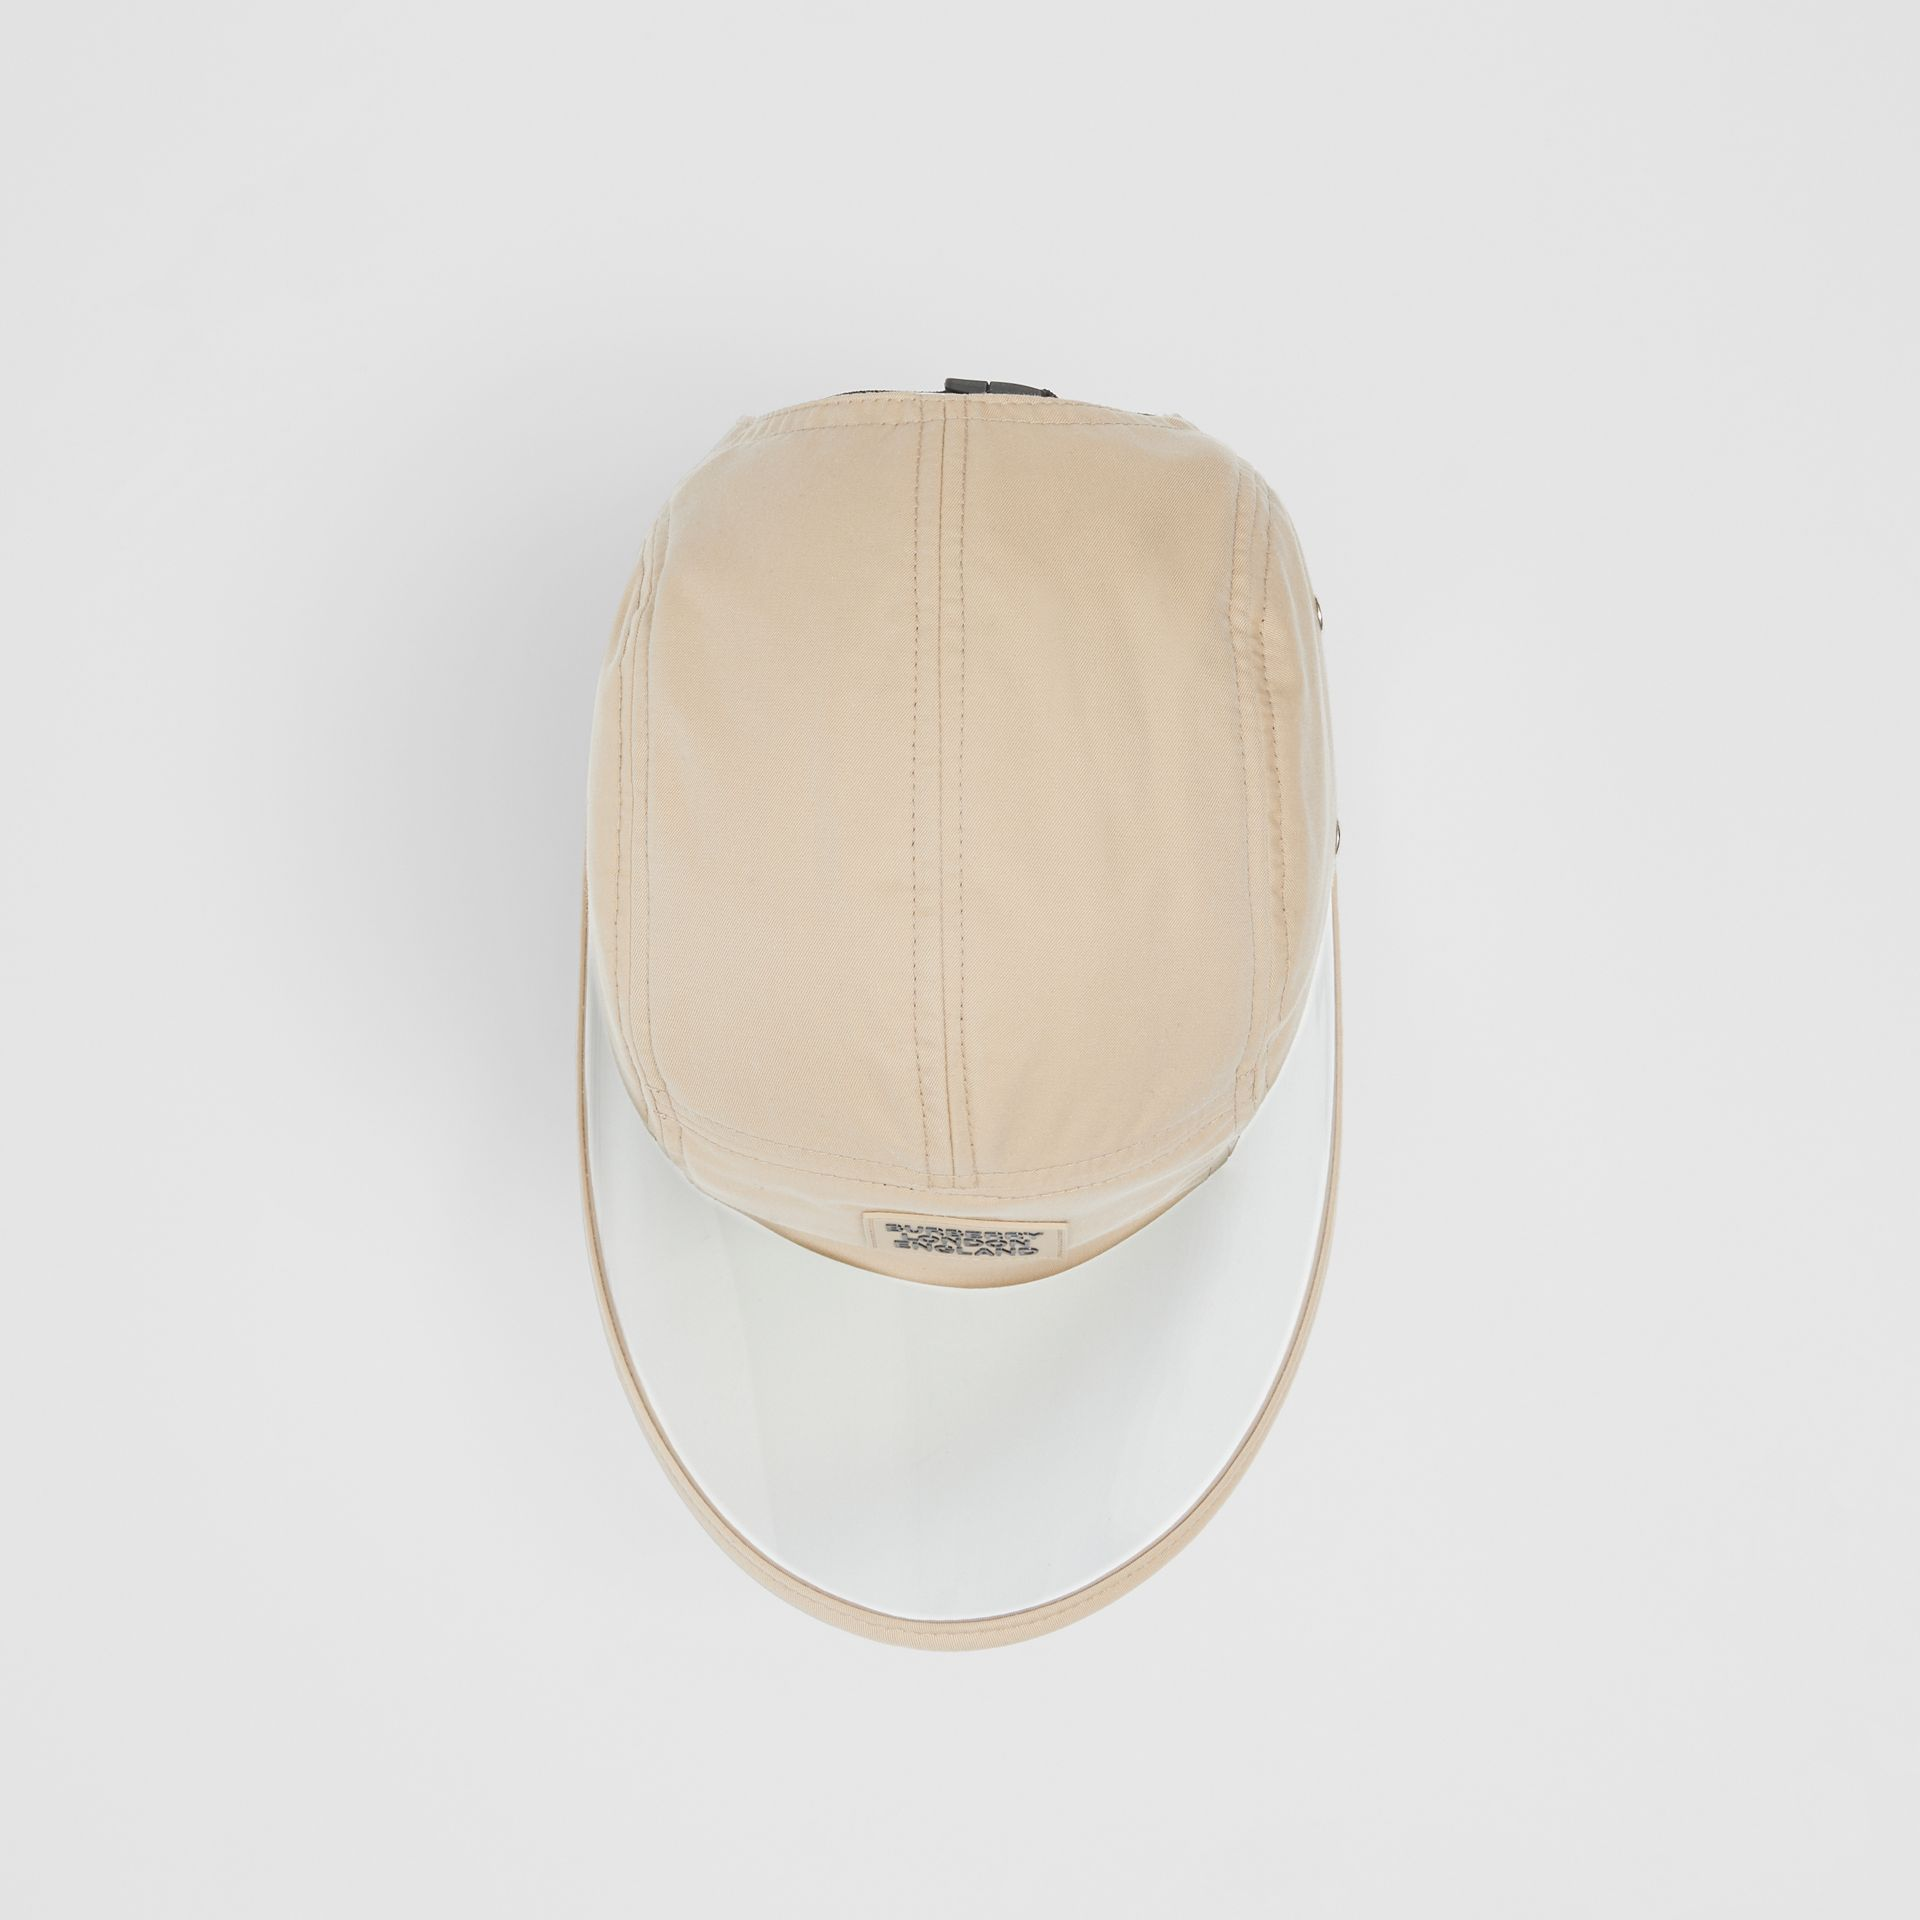 Casquette à bords larges transparente en sergé de coton - Exclusivité en ligne (Fauve Doux) | Burberry - photo de la galerie 3